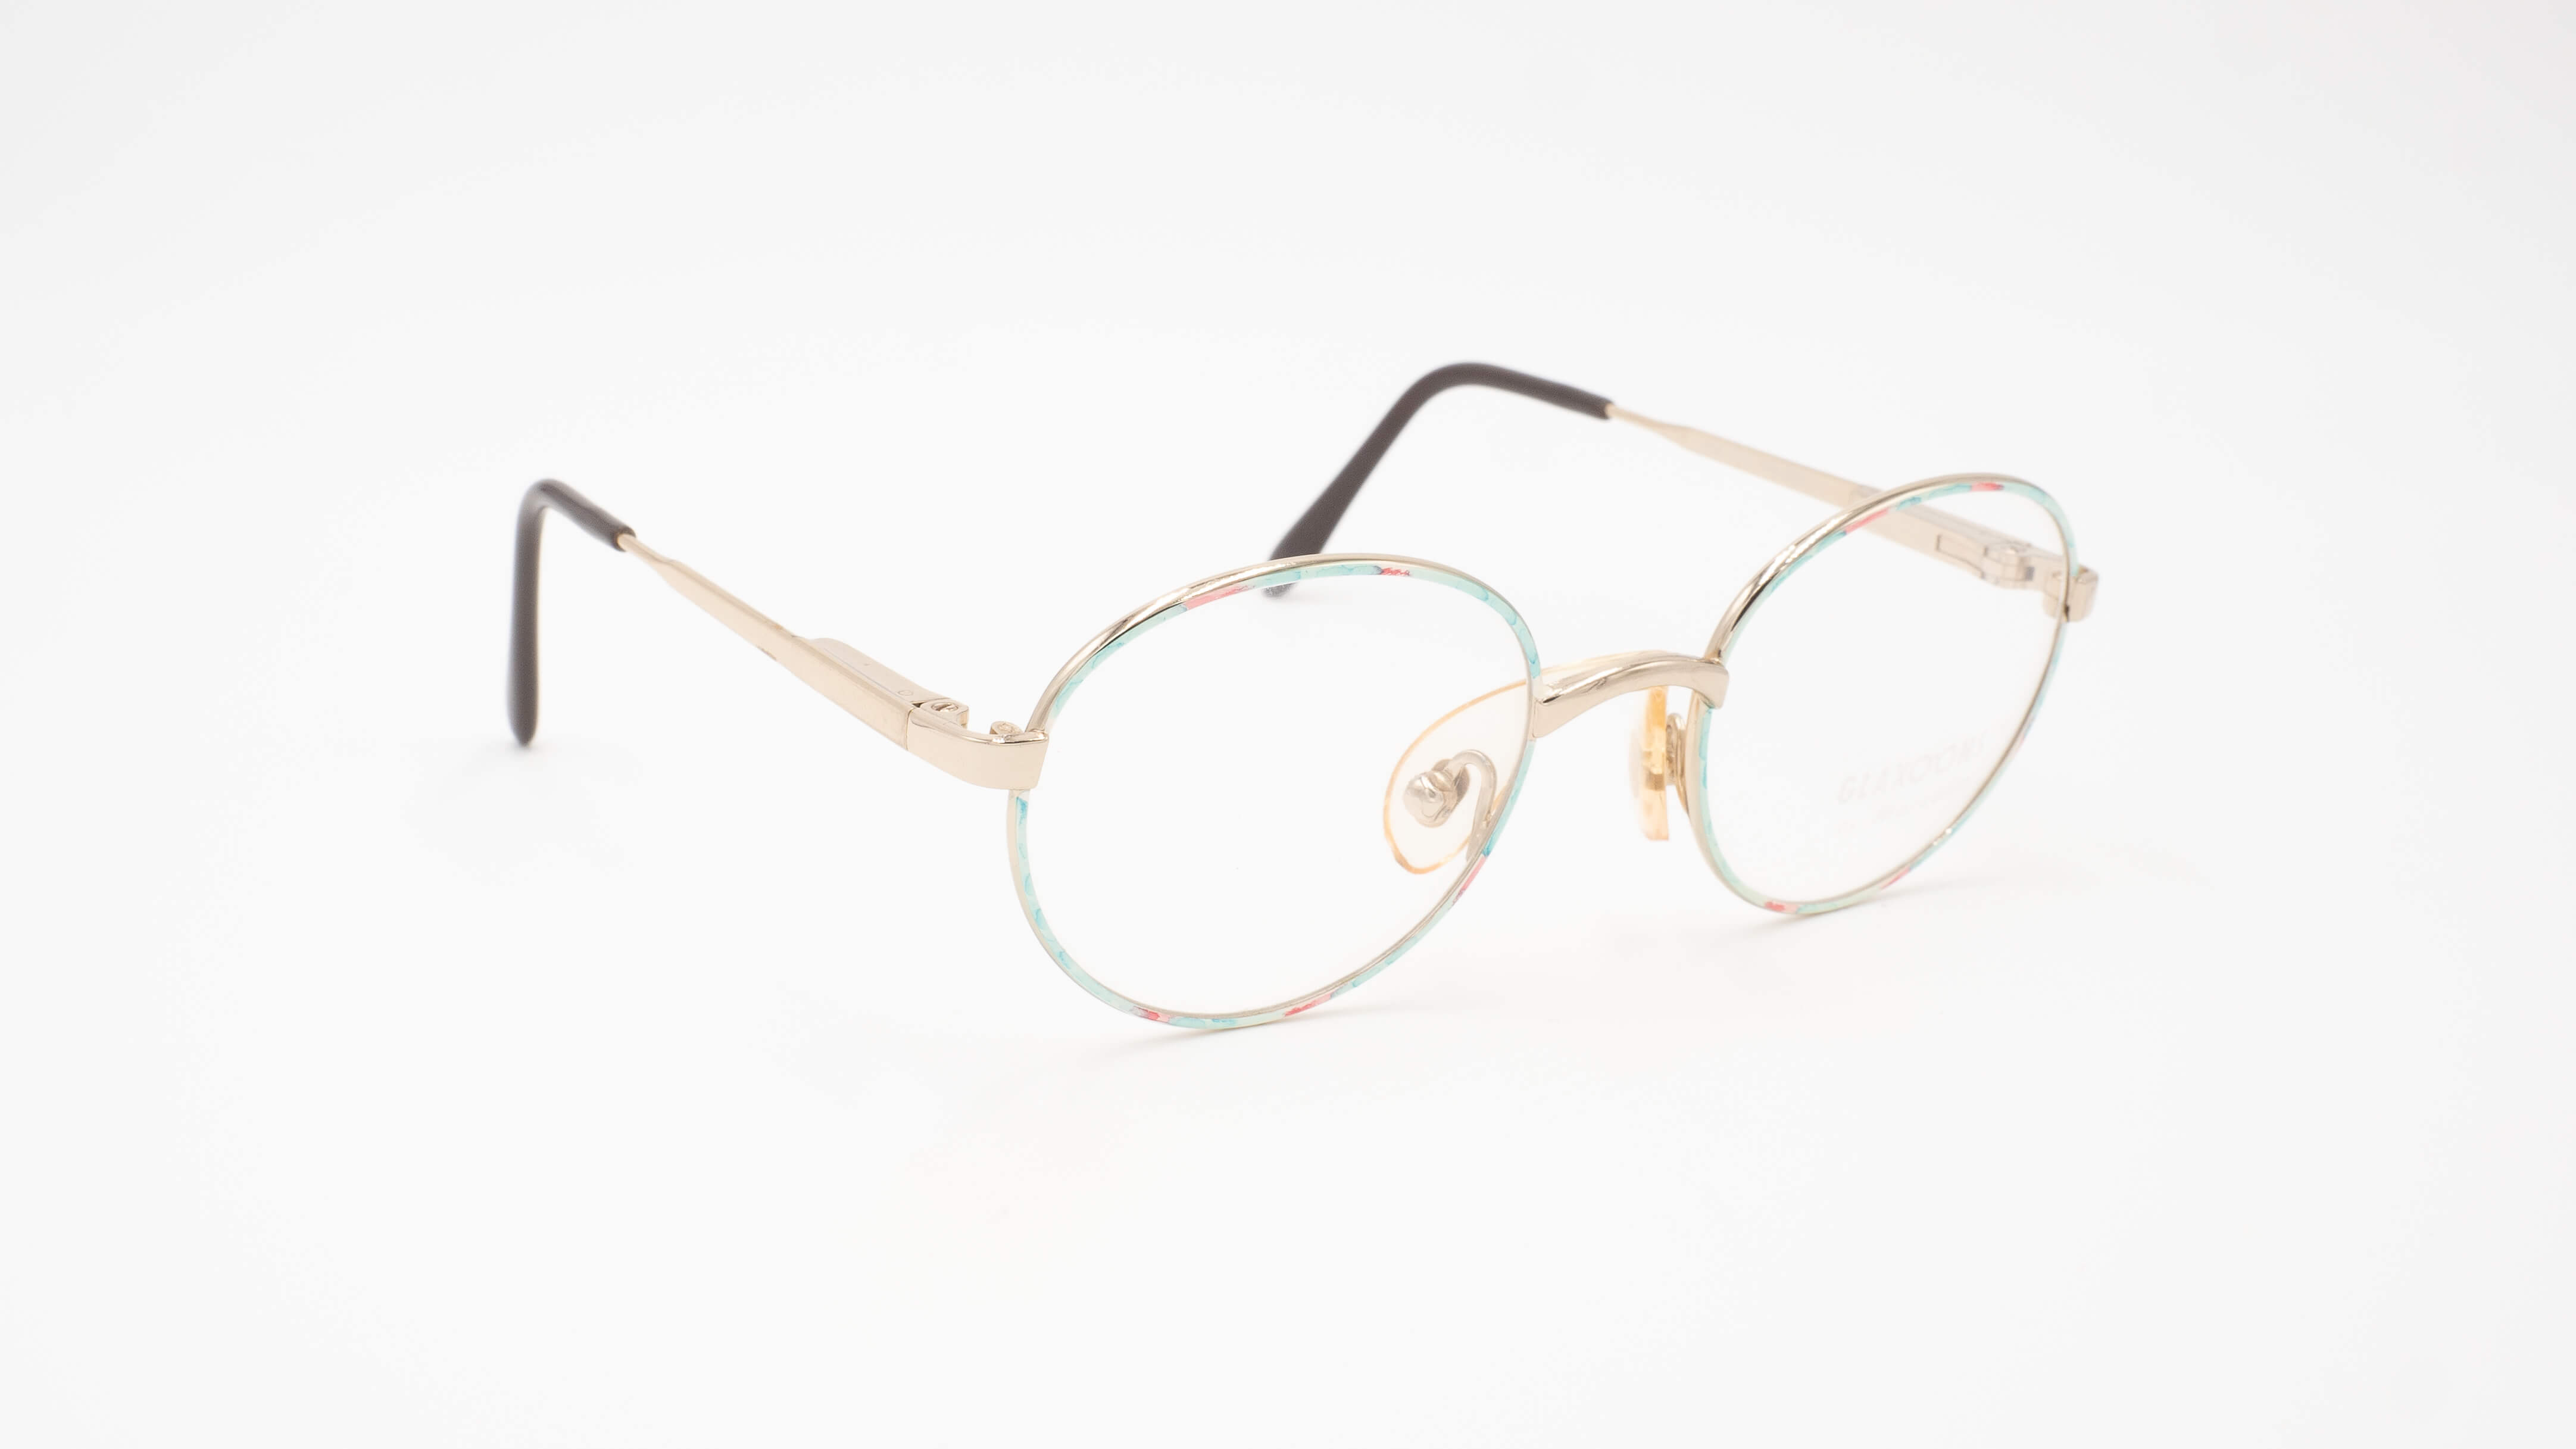 Marcolin - Brille Glaxo-Ons (gold)